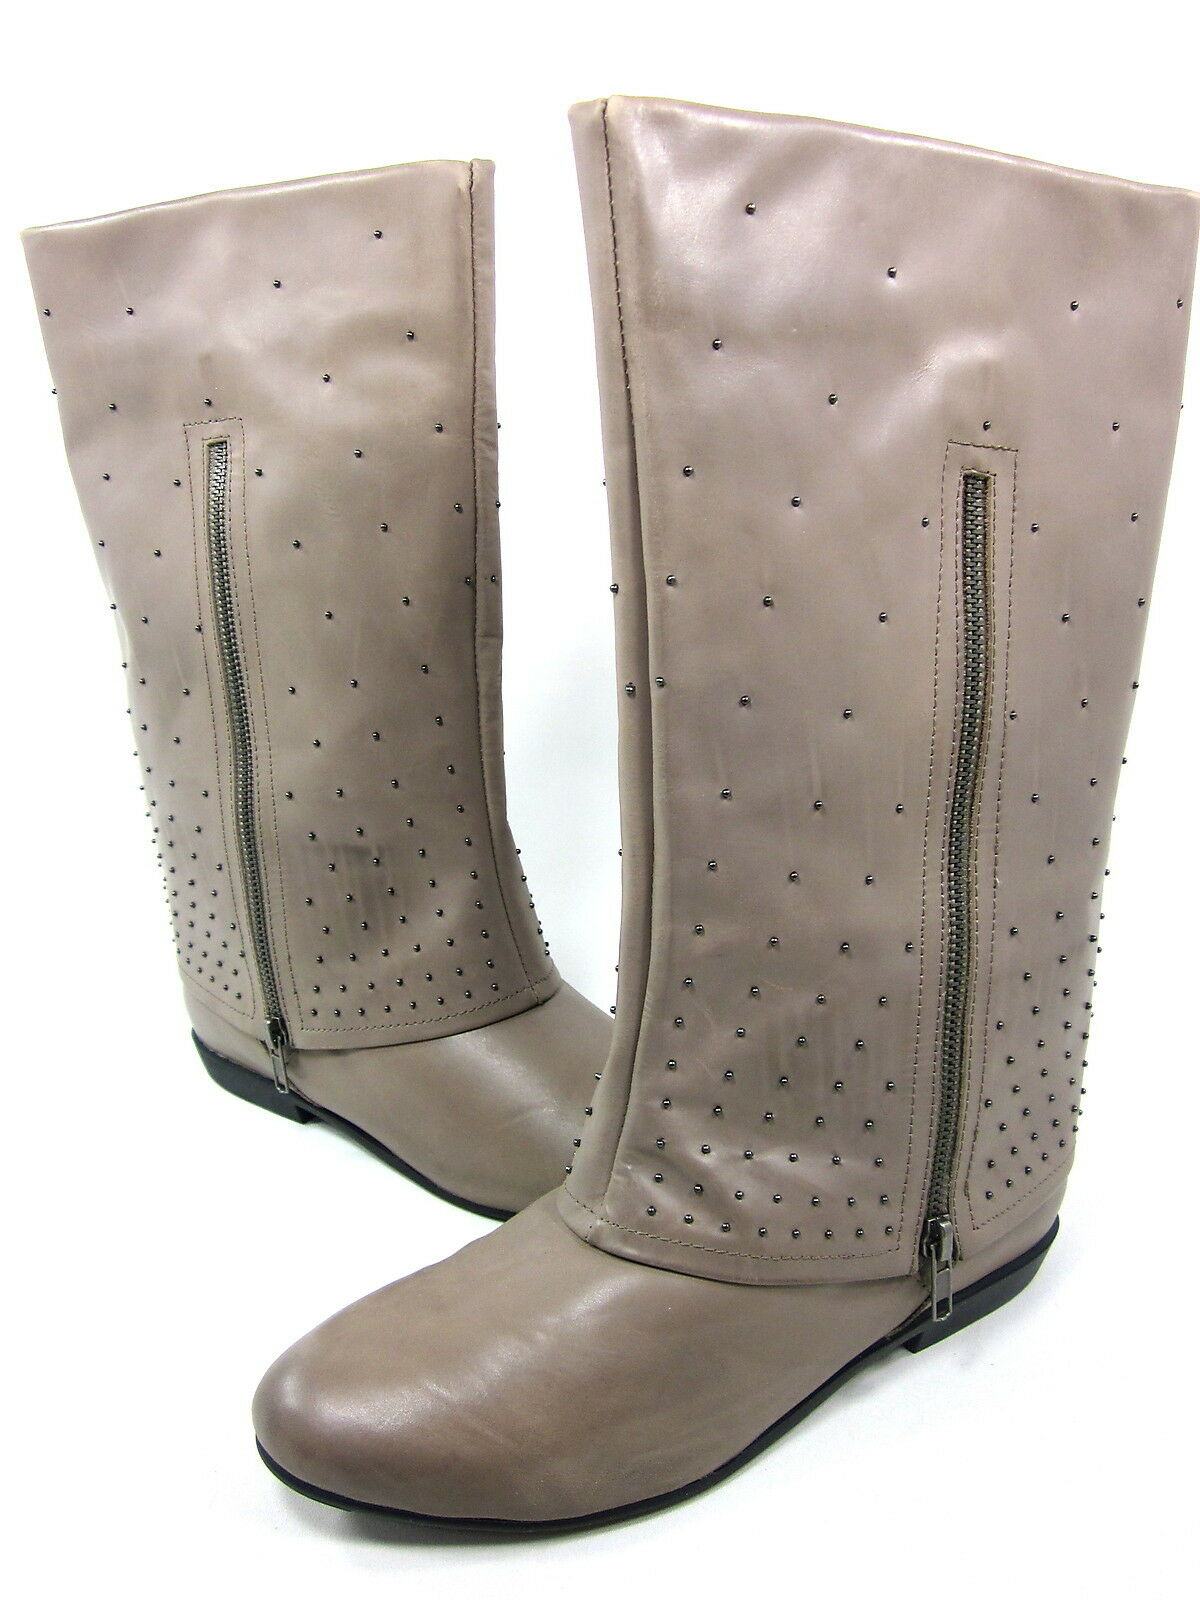 MESSECA, LINDA CUFFED BOOT, Donna, M HROOM LEATHER,   8.5M, NEW WITHOUT BOX